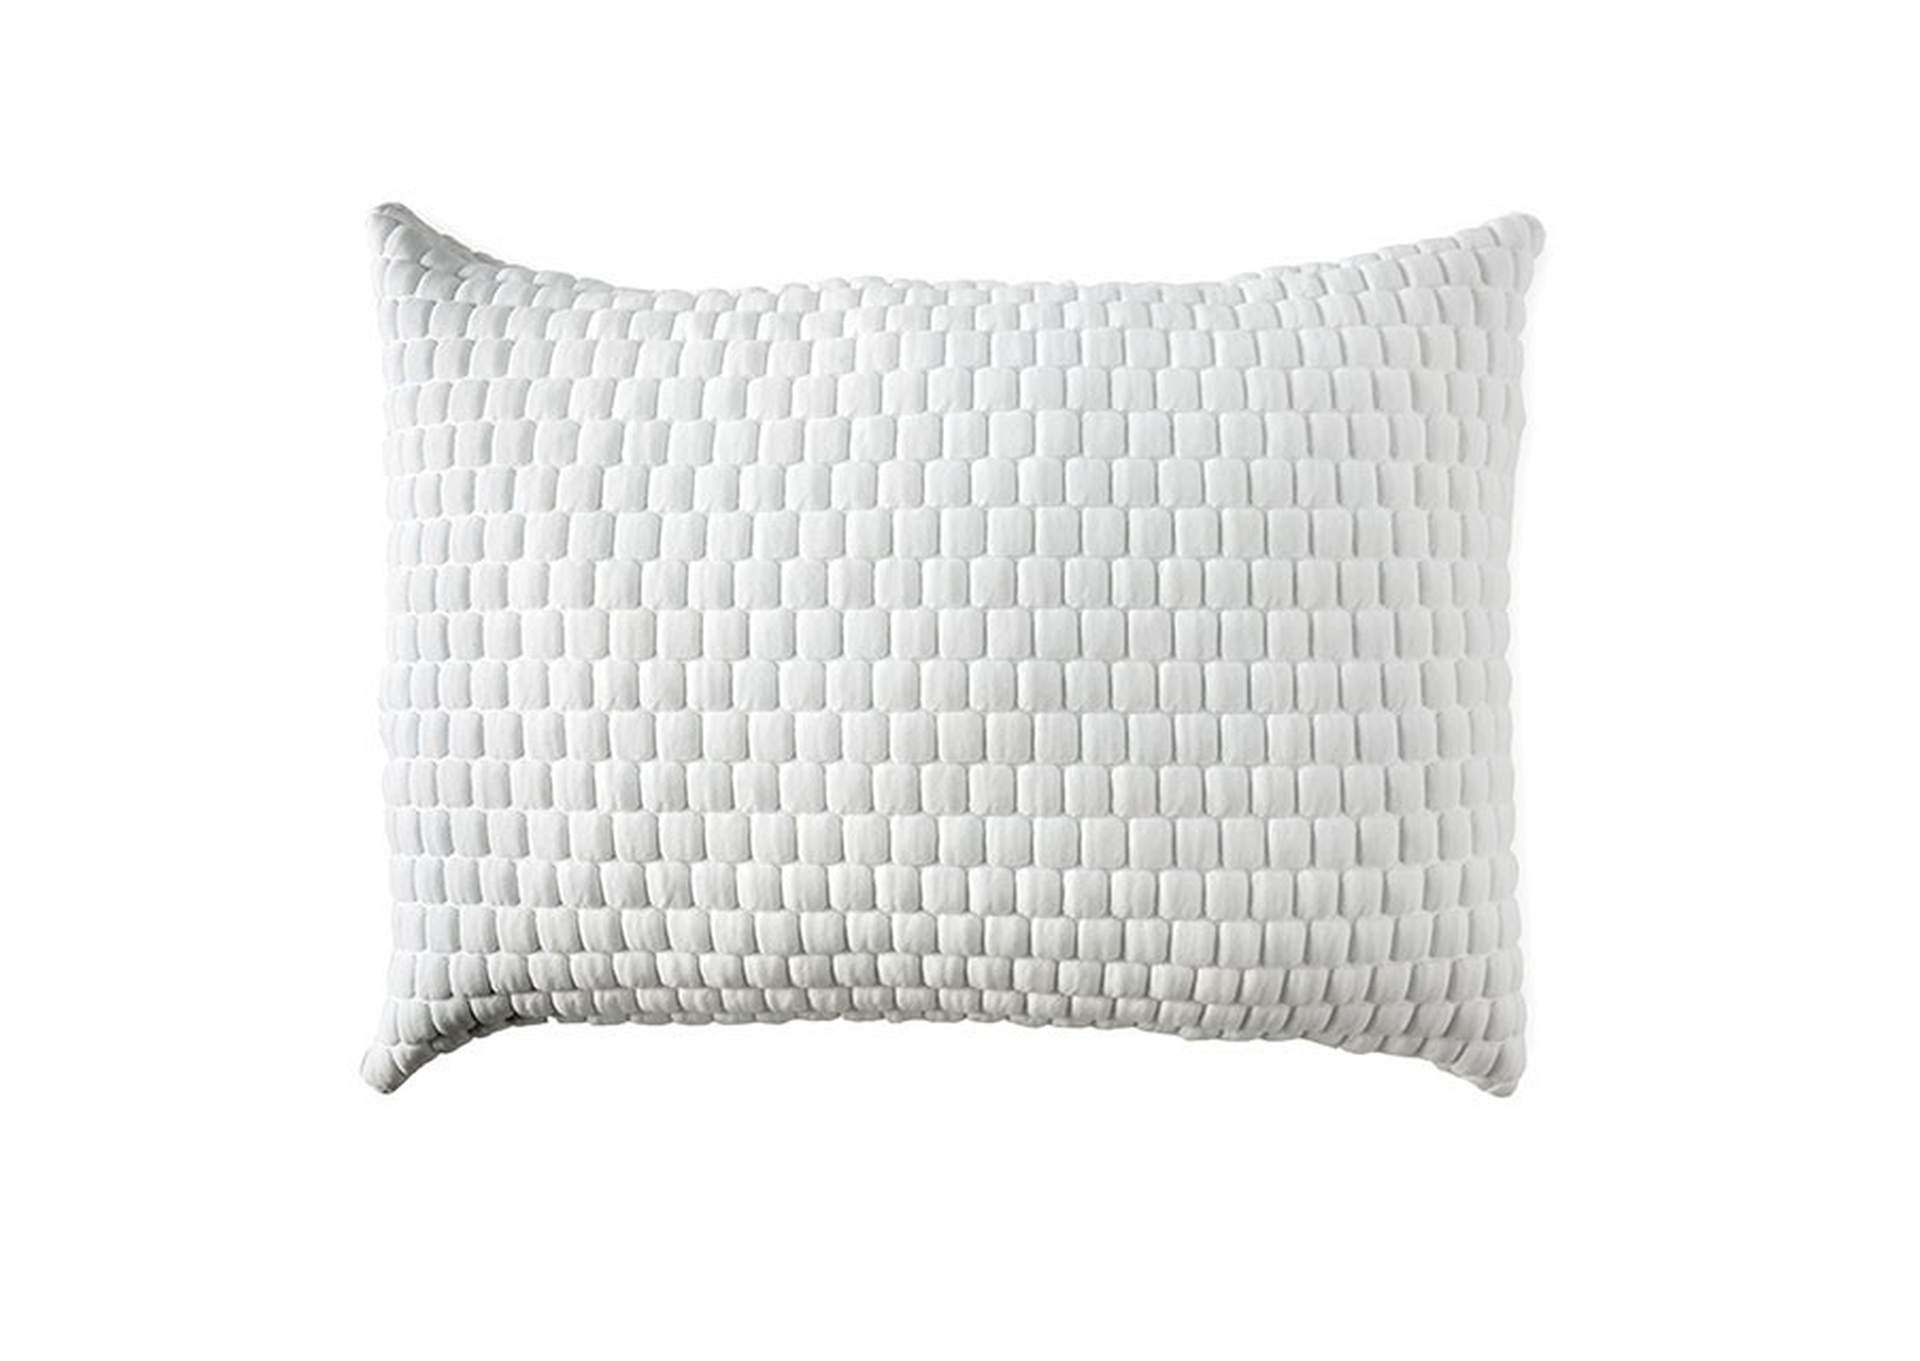 Crocus Memory Foam Pillow,Furniture of America